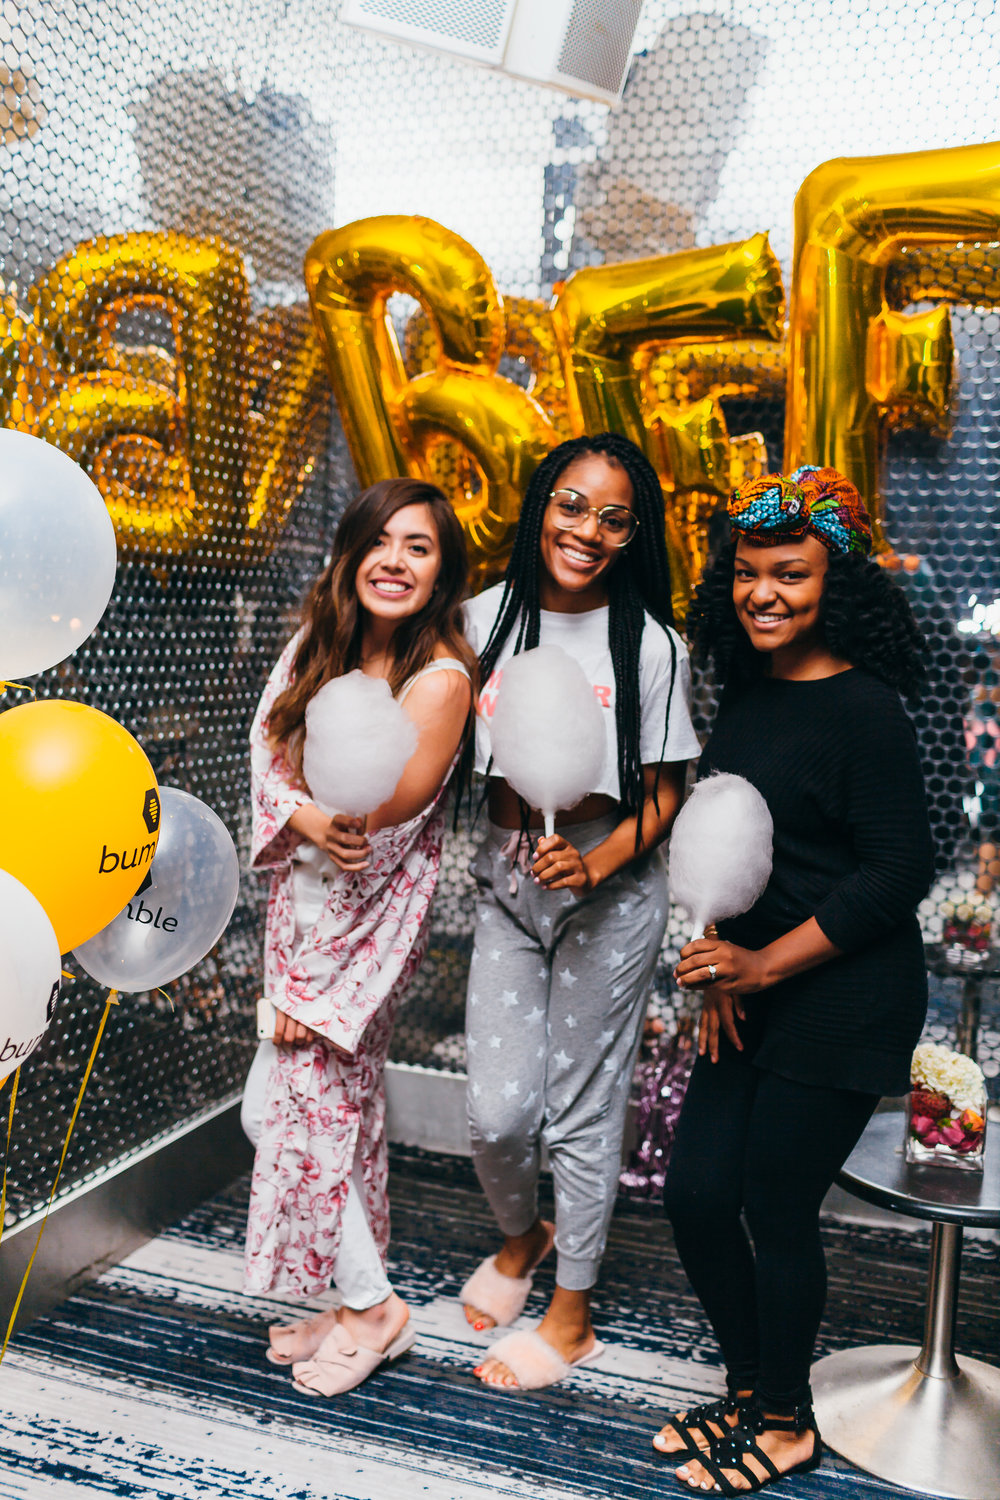 bumble-bff-dallas-launch-event-6614.jpg